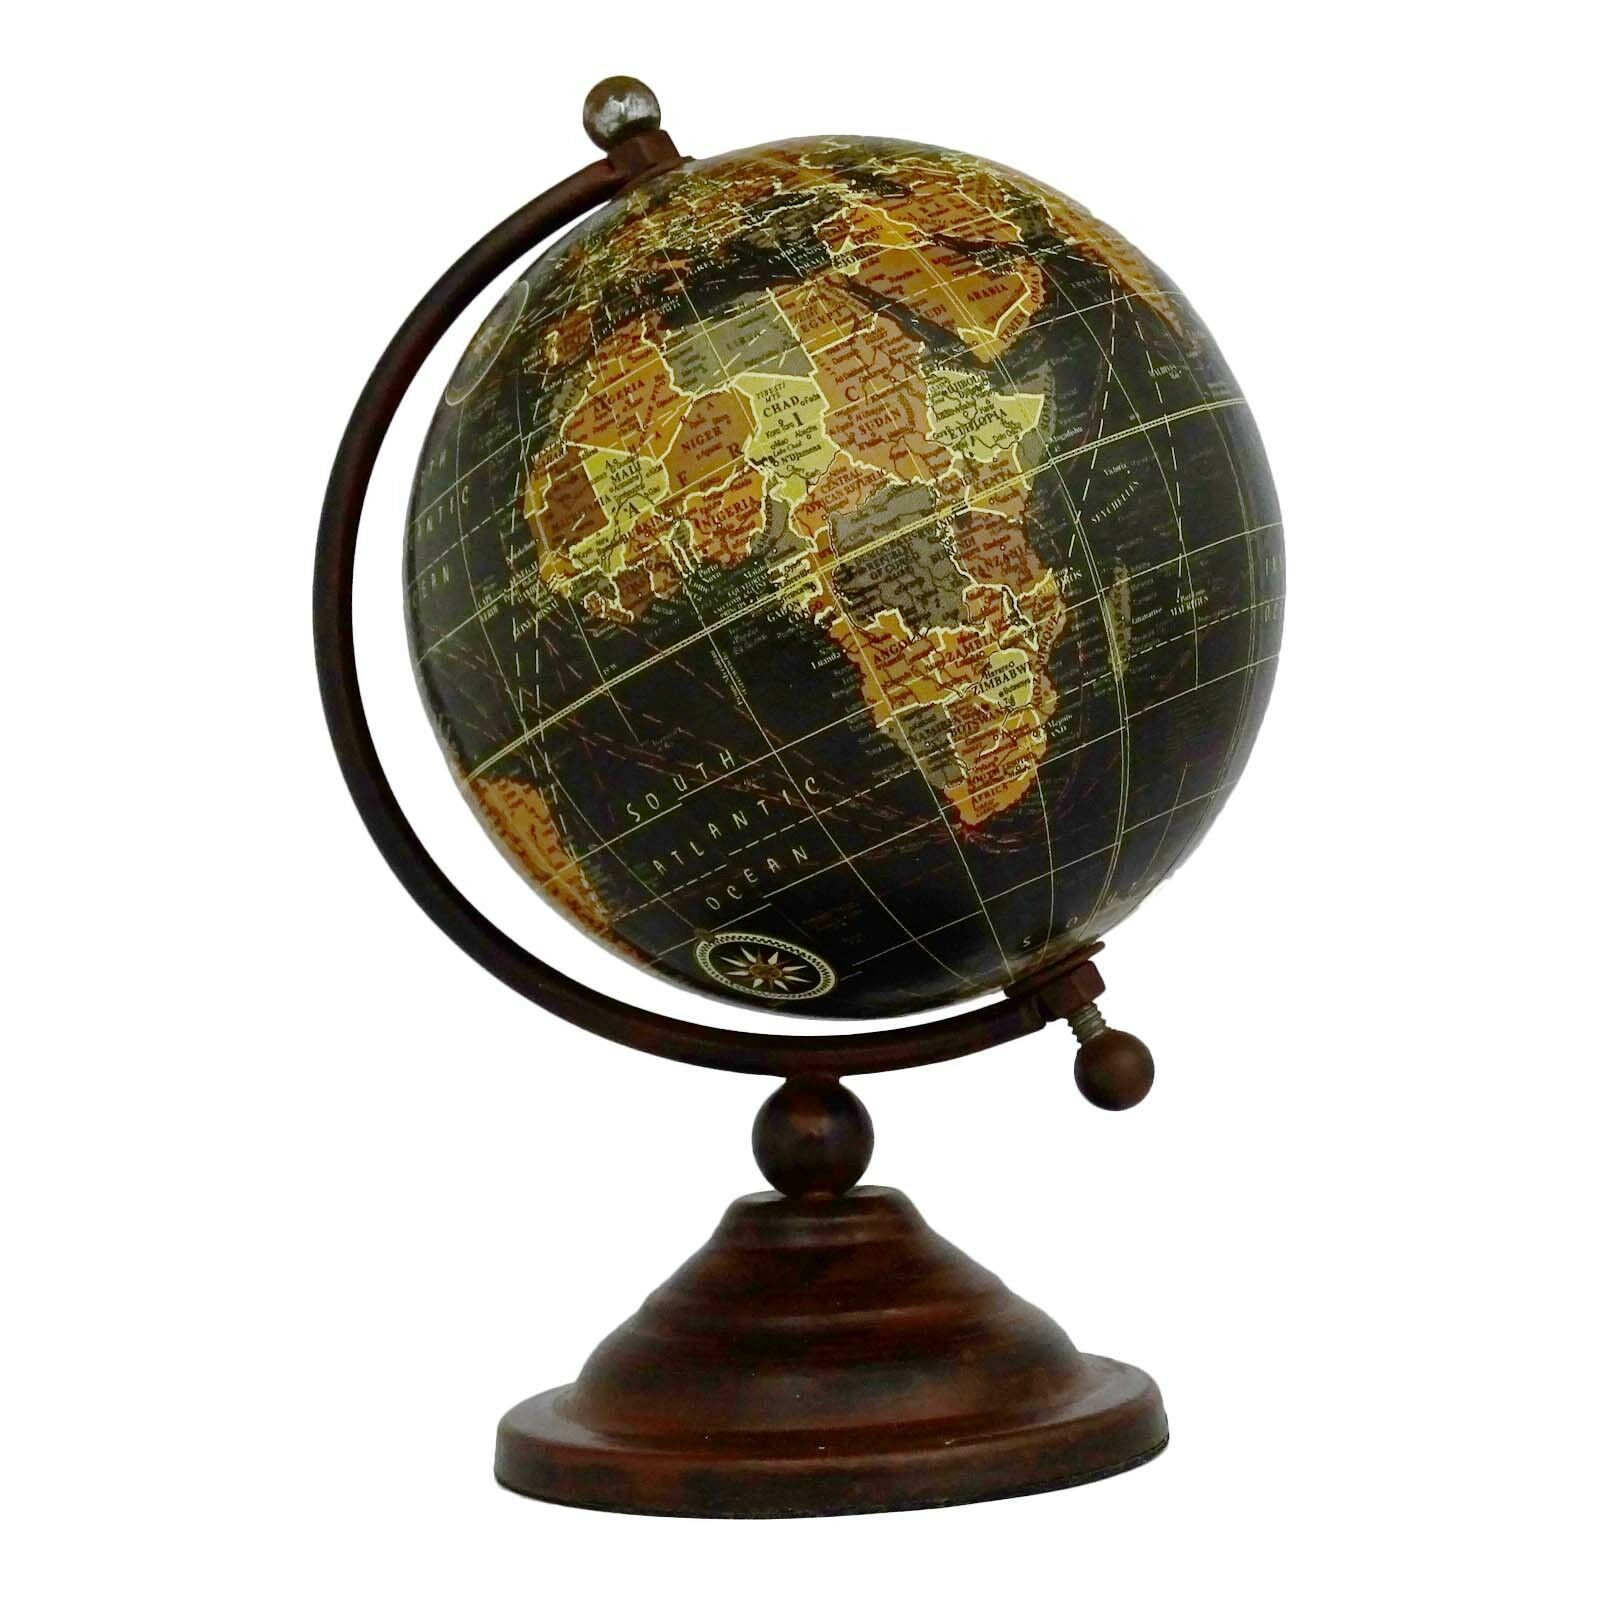 Rotating world map globes table decor ocean geographical earth new other lowest price gumiabroncs Choice Image